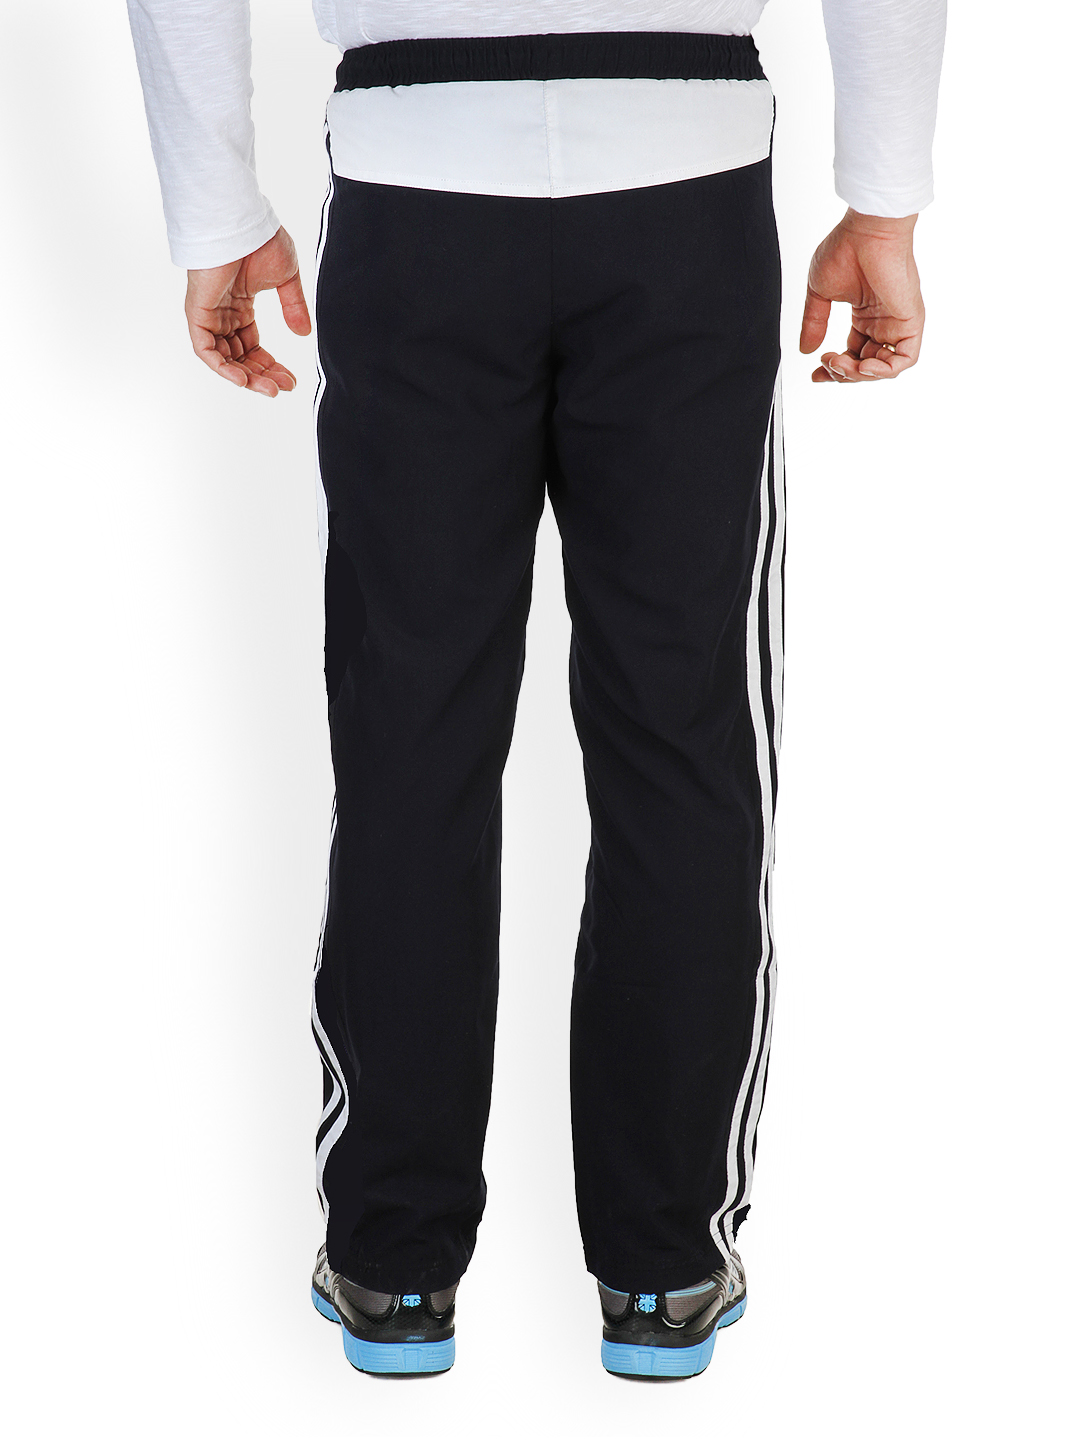 Myntra Dazzgear Men Navy Track Pants 493552 | Buy Myntra Dazzgear Track Pants at best price ...